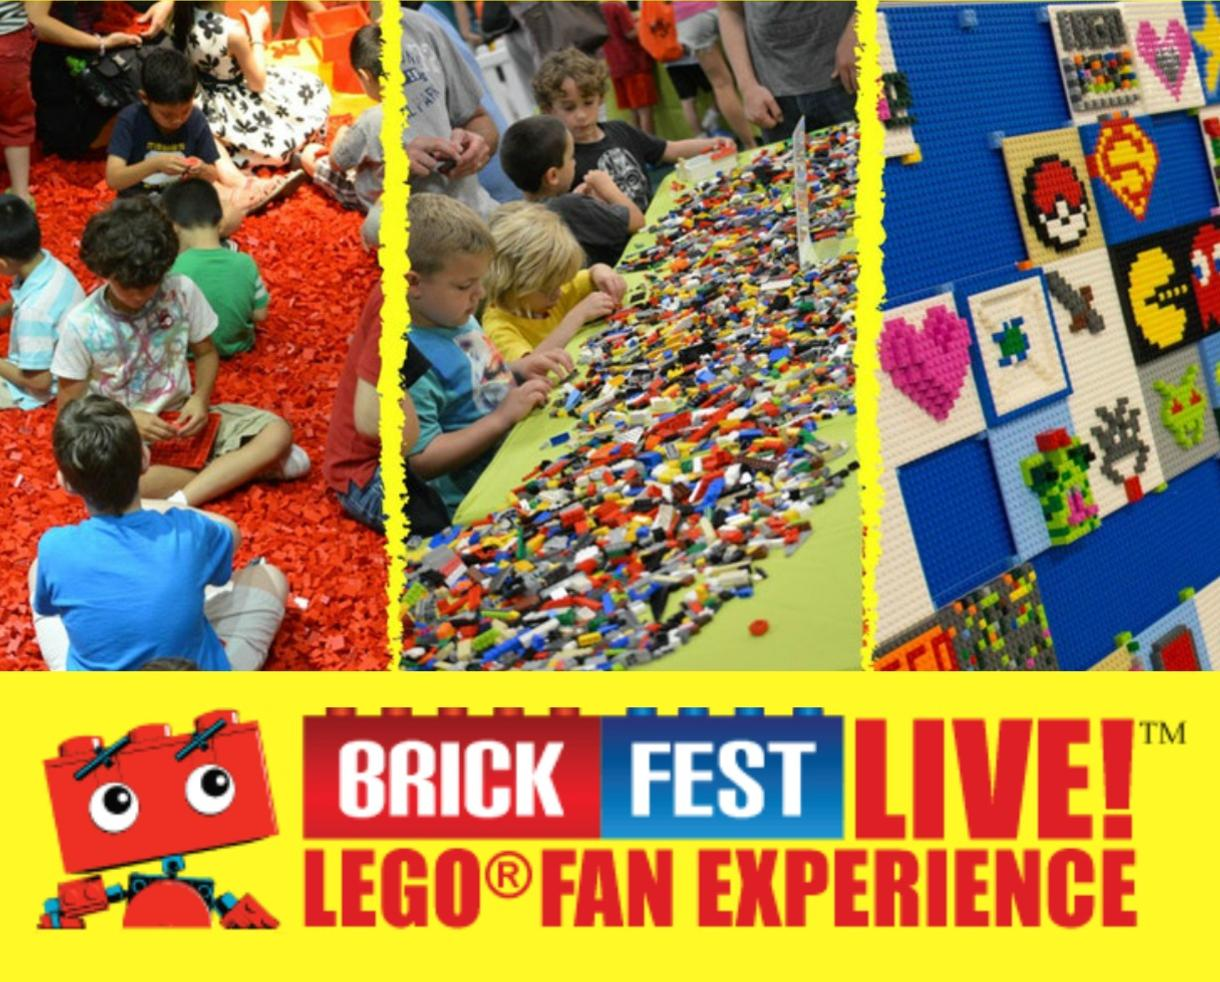 $15 for Baltimore Brick Fest Live LEGO® Fan Experience Standard Ticket + LEGO E-Book - November 4th & 5th at Maryland State Fairgrounds (Up to 70% Off)